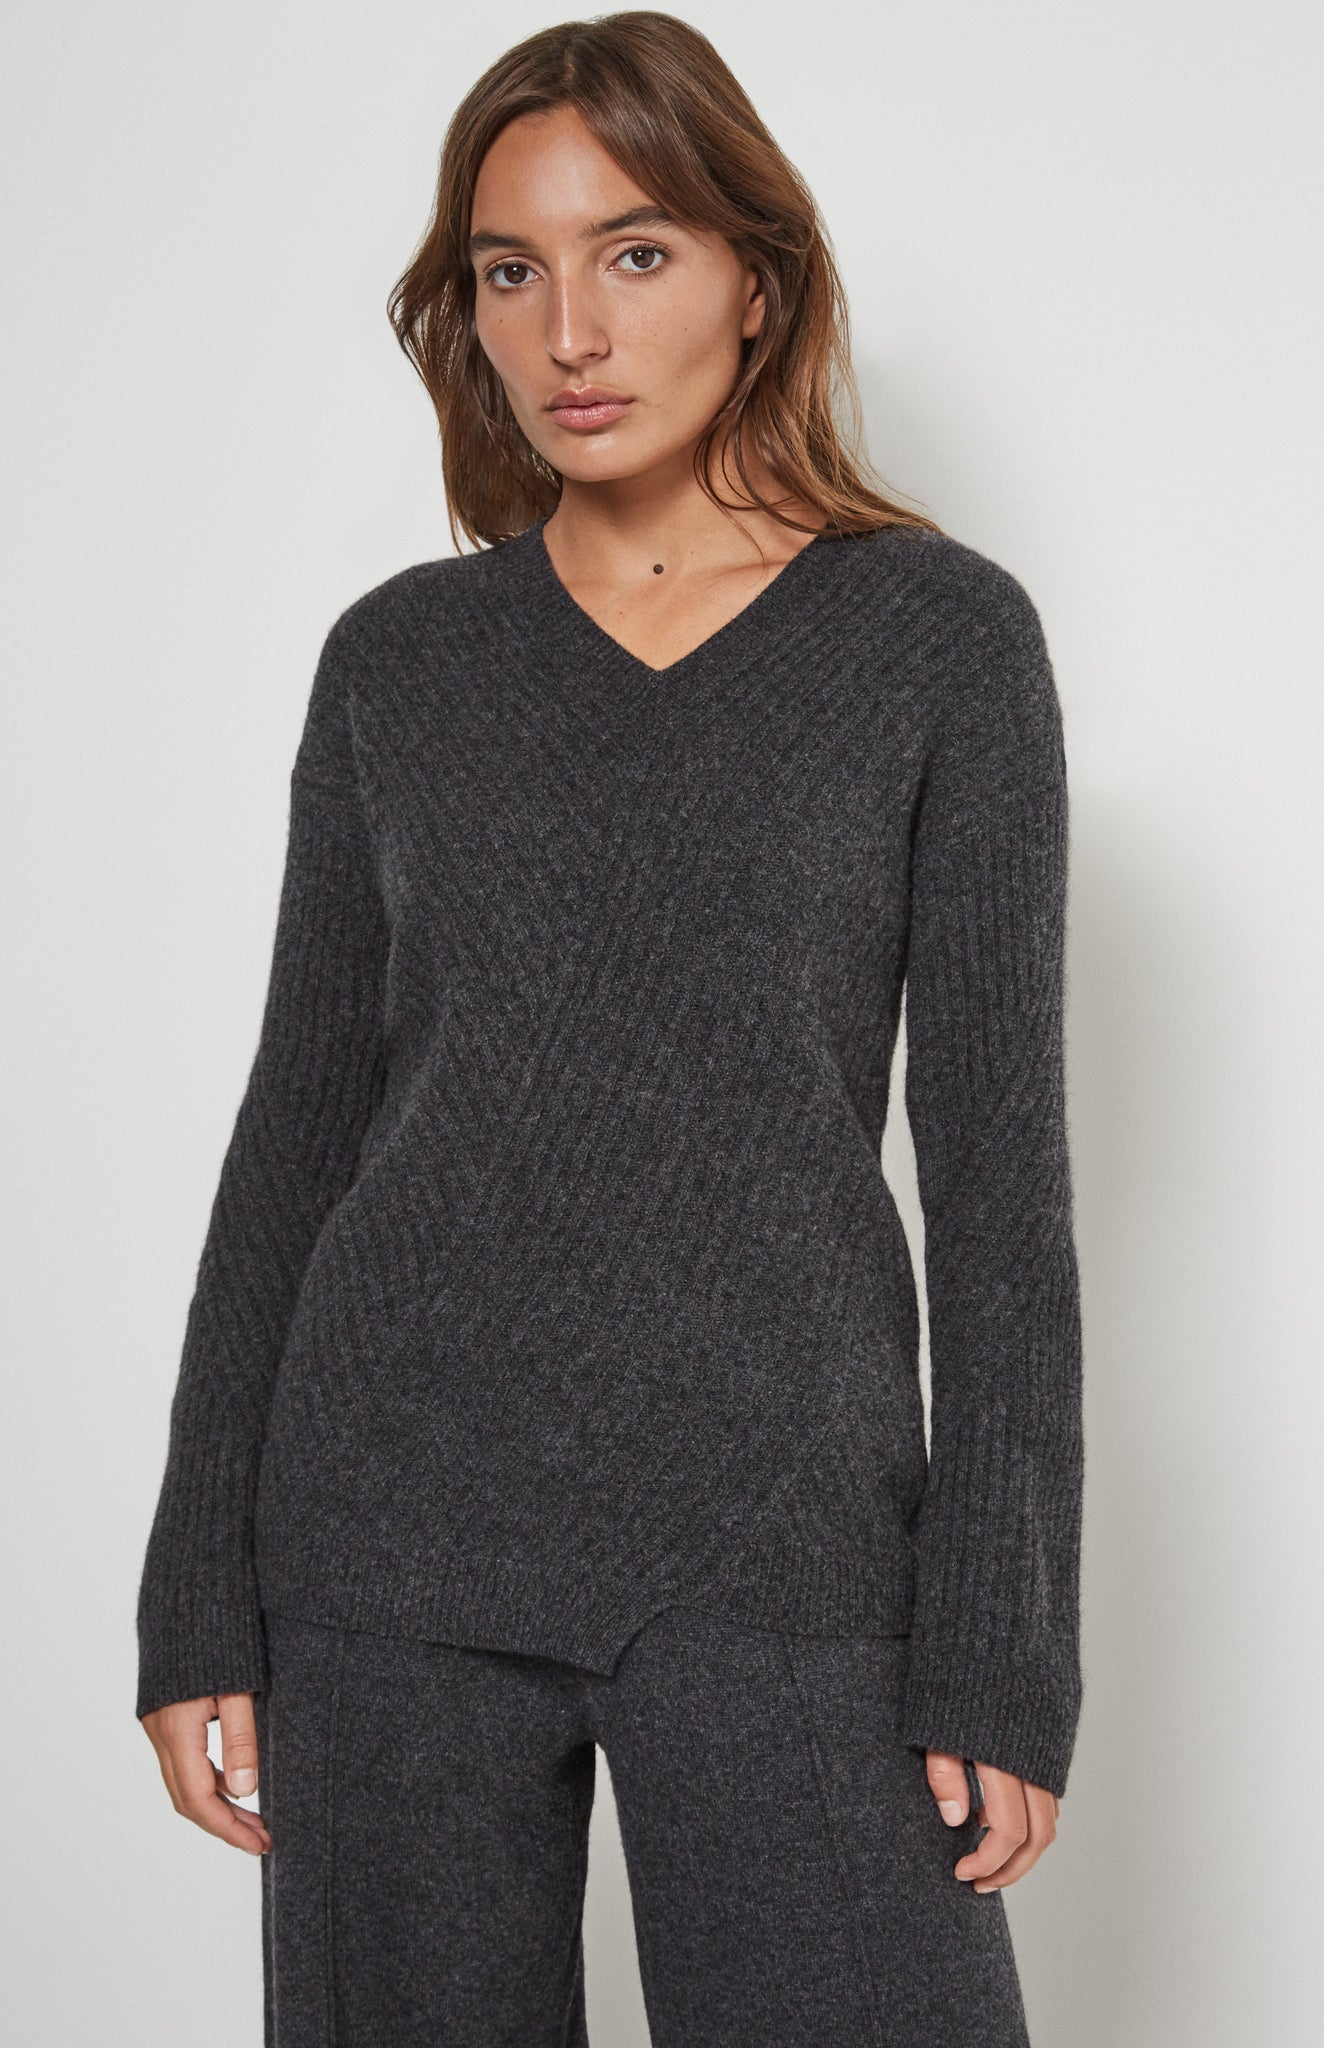 Travelling Rib V Neck Jumper In Charcoal